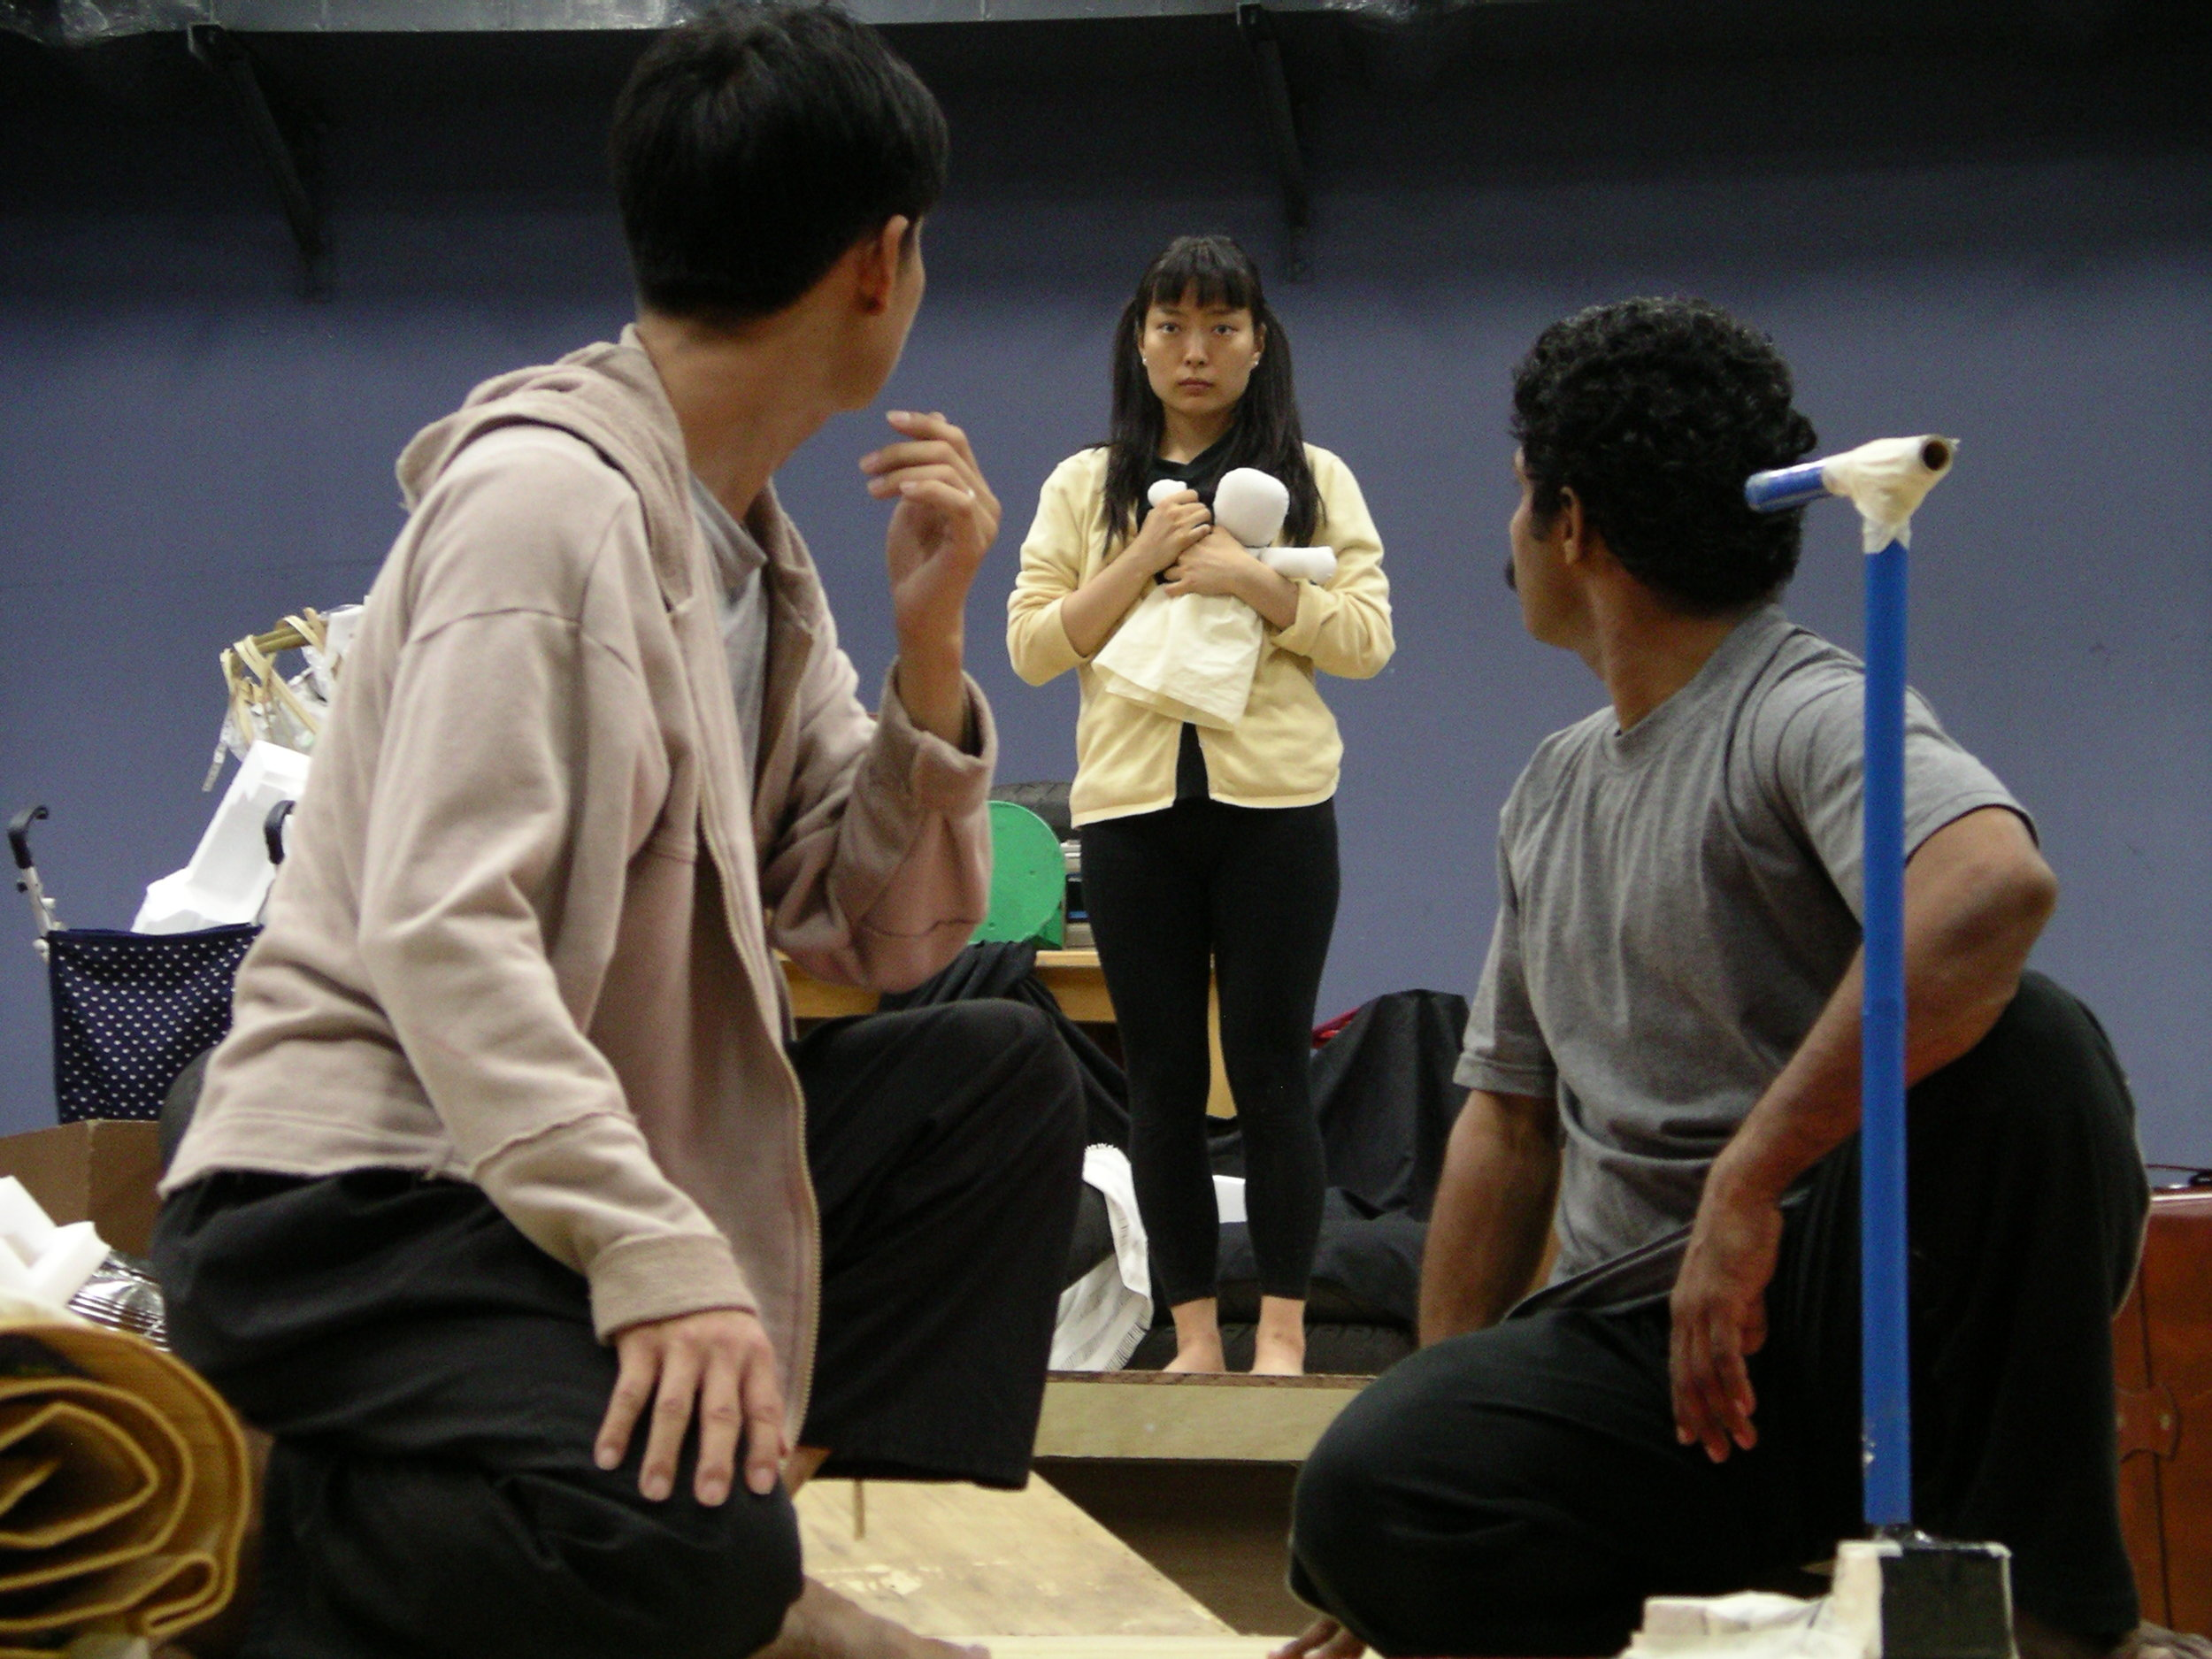 The encounter between Man 1 and Man 2 and The Girl (Jeungsook Yoo), during TTRP rehearsals of  The Water Station  in 2004.